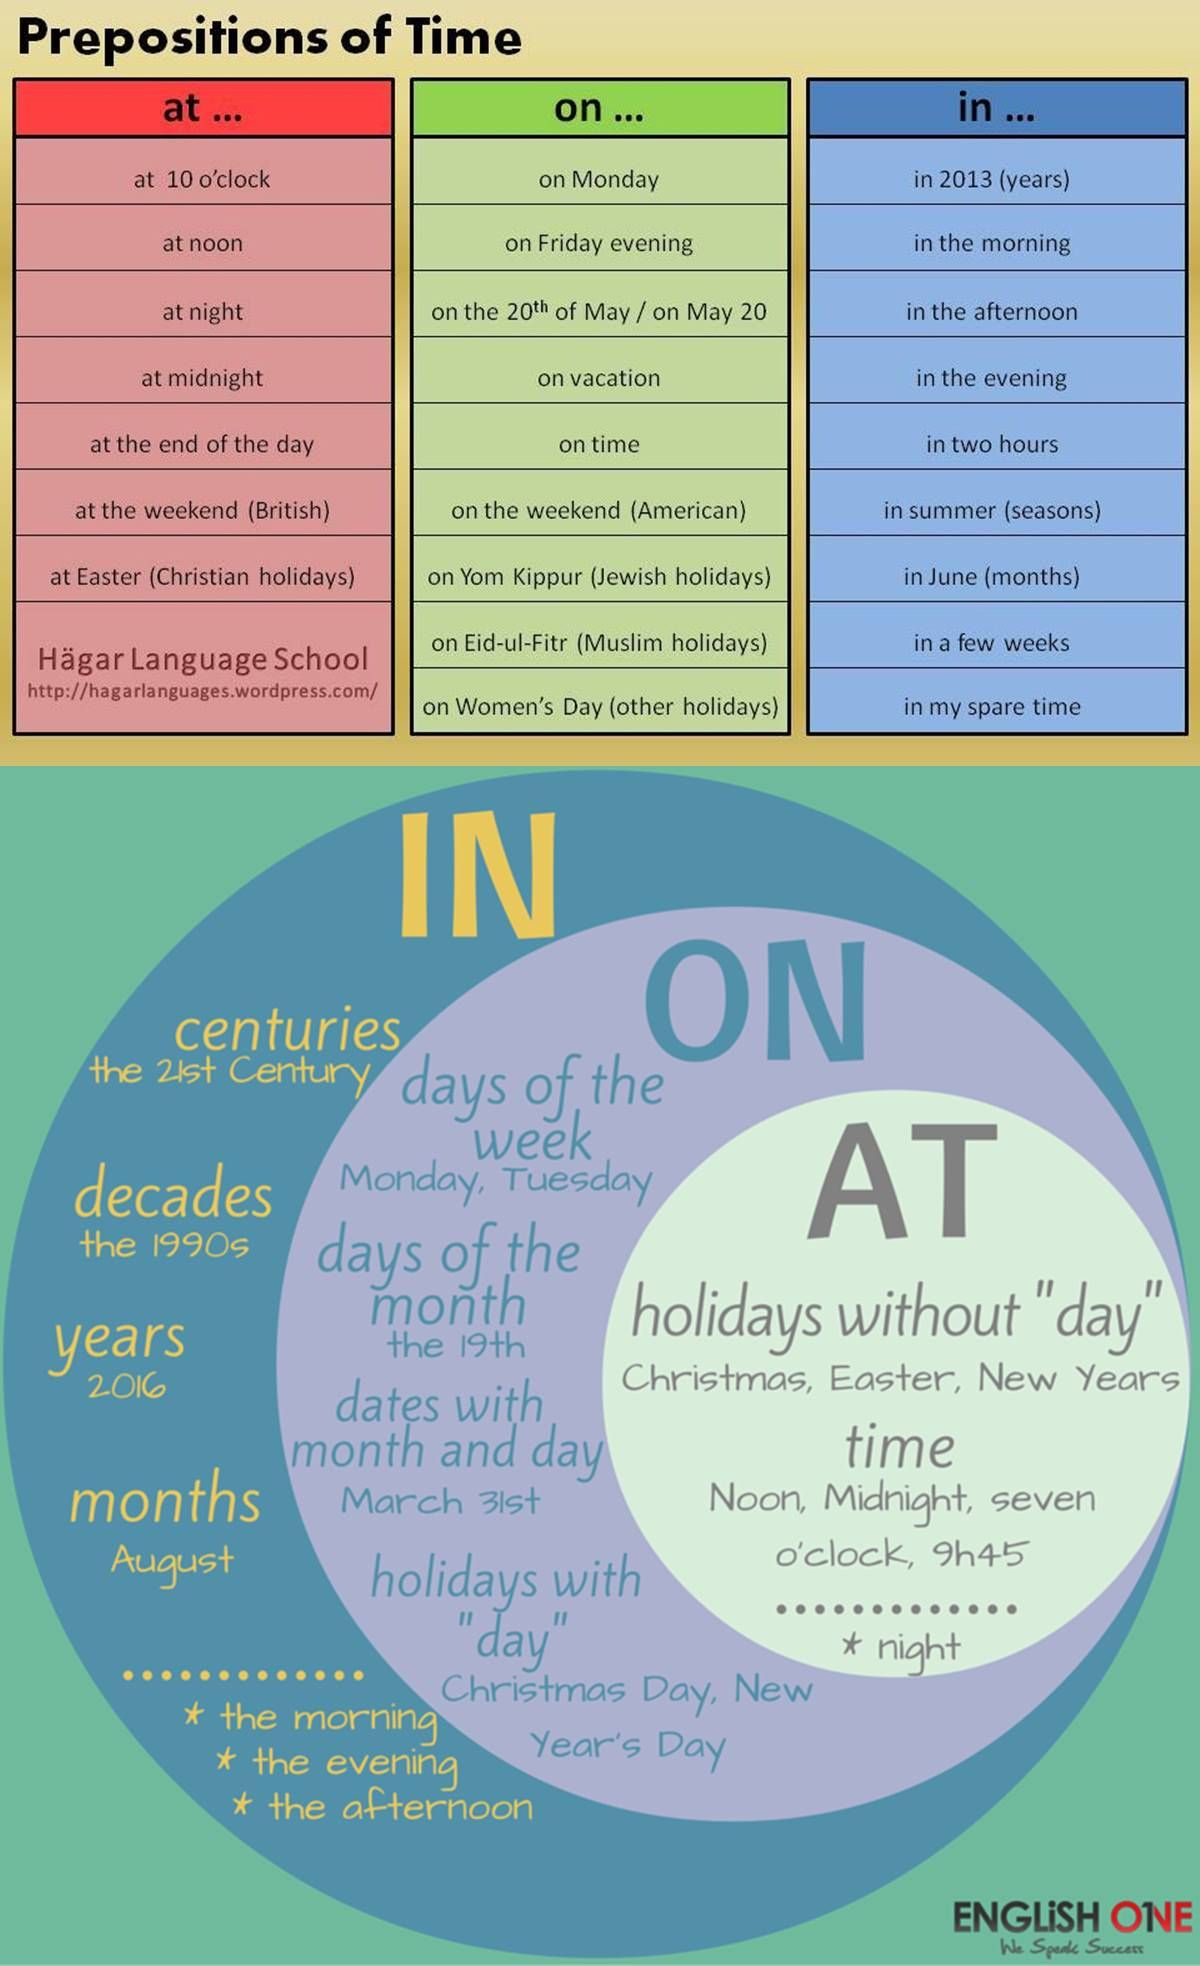 Preposition In On At